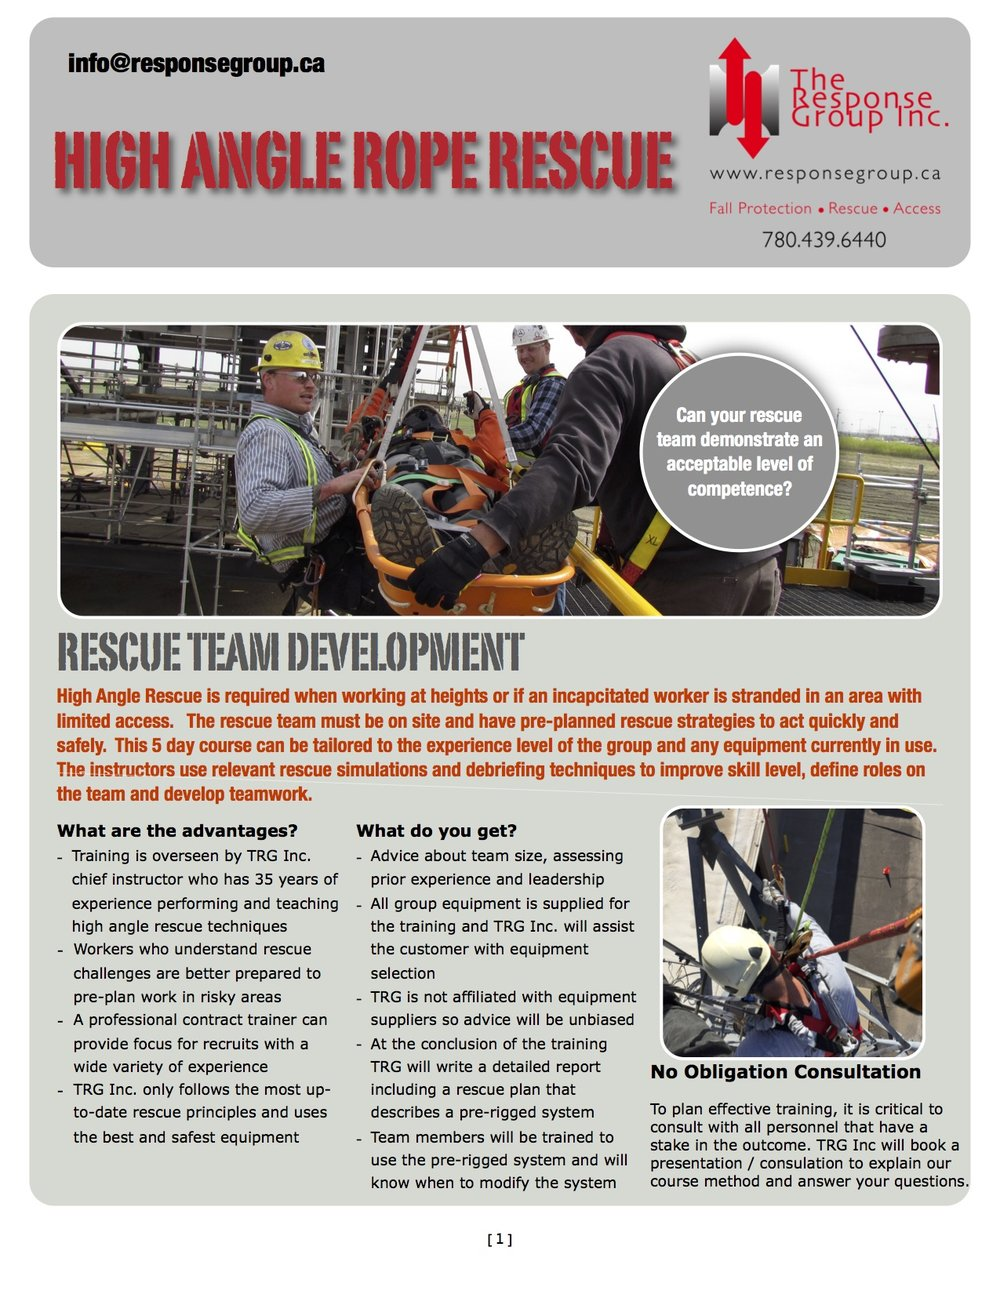 rope rescue team brochure jpeg.jpg